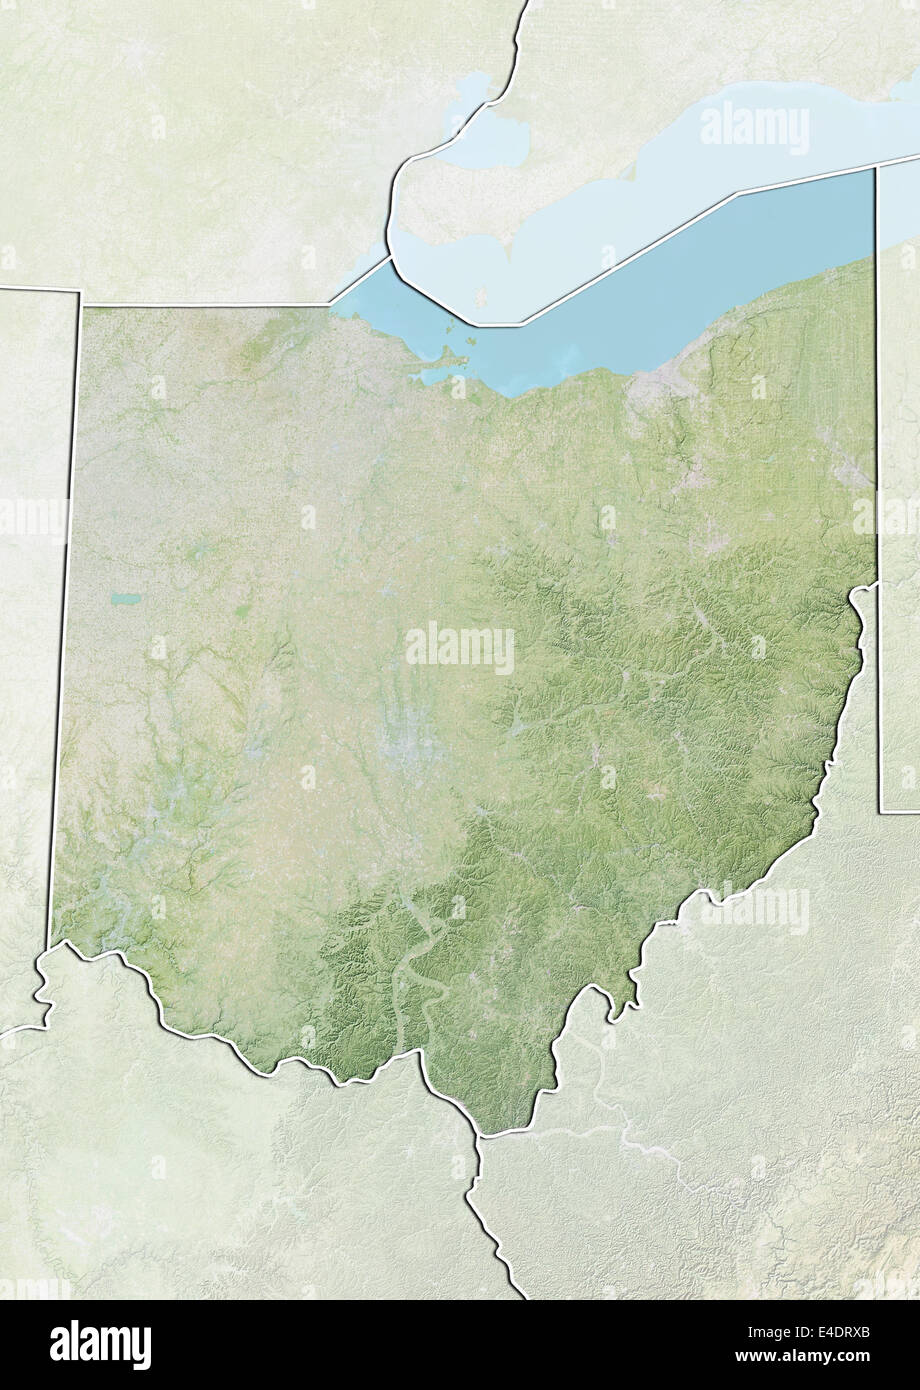 Ohio United States Map.State Of Ohio United States Relief Map Stock Photo 71604243 Alamy